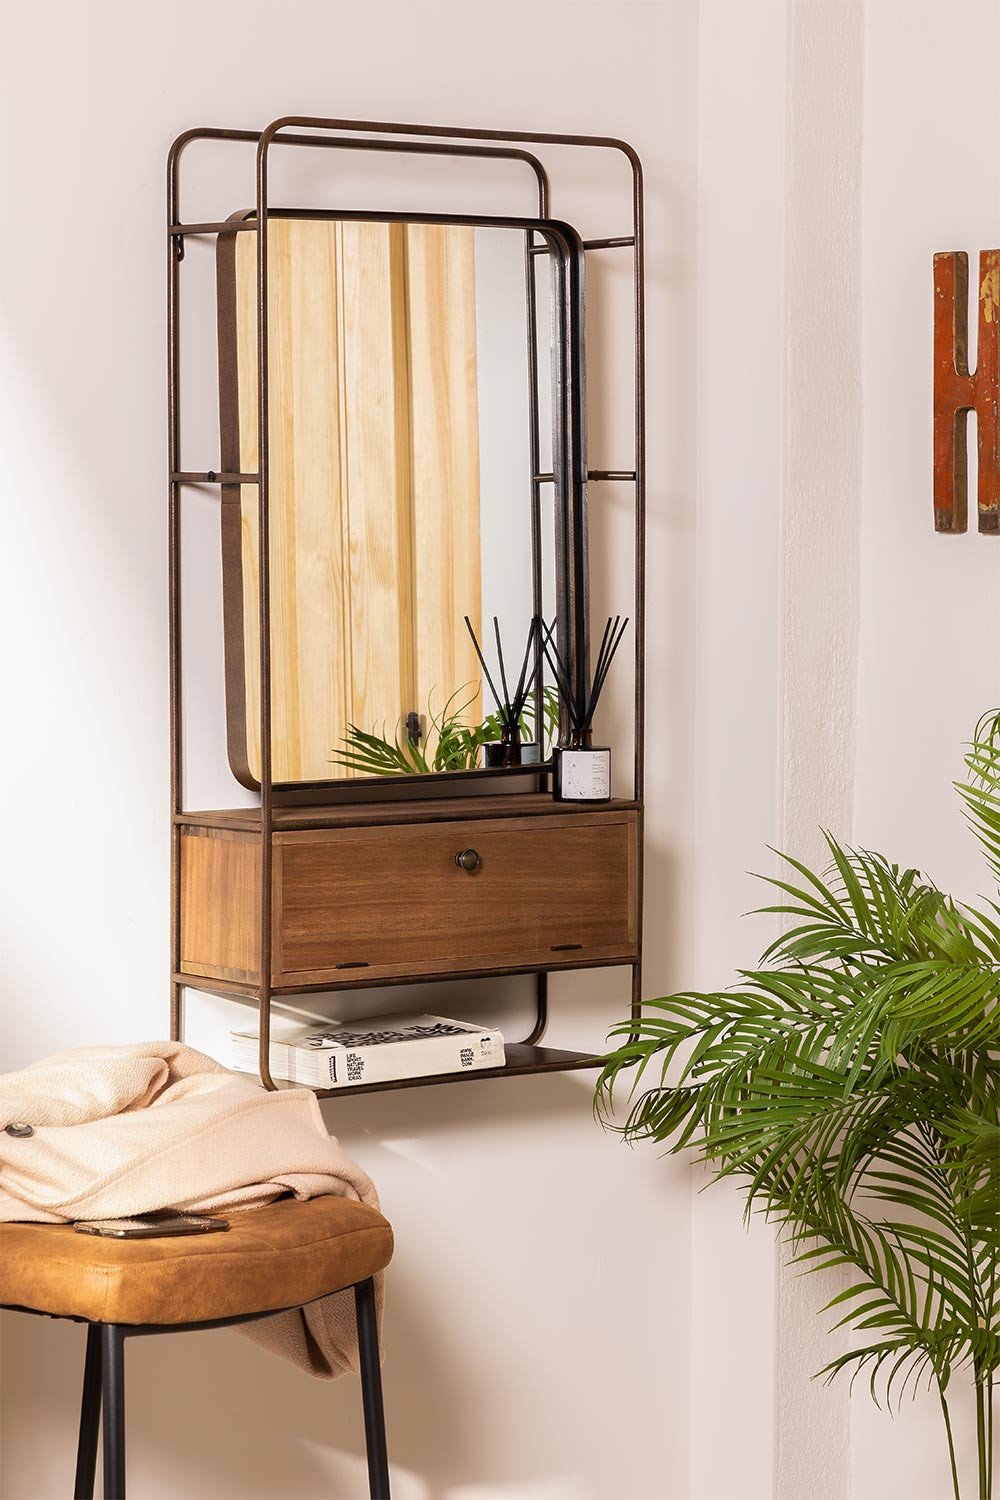 Rectangular Wall Mirror with Wooden Metal Drawer (99x50 cm) Oyan, gallery image 1